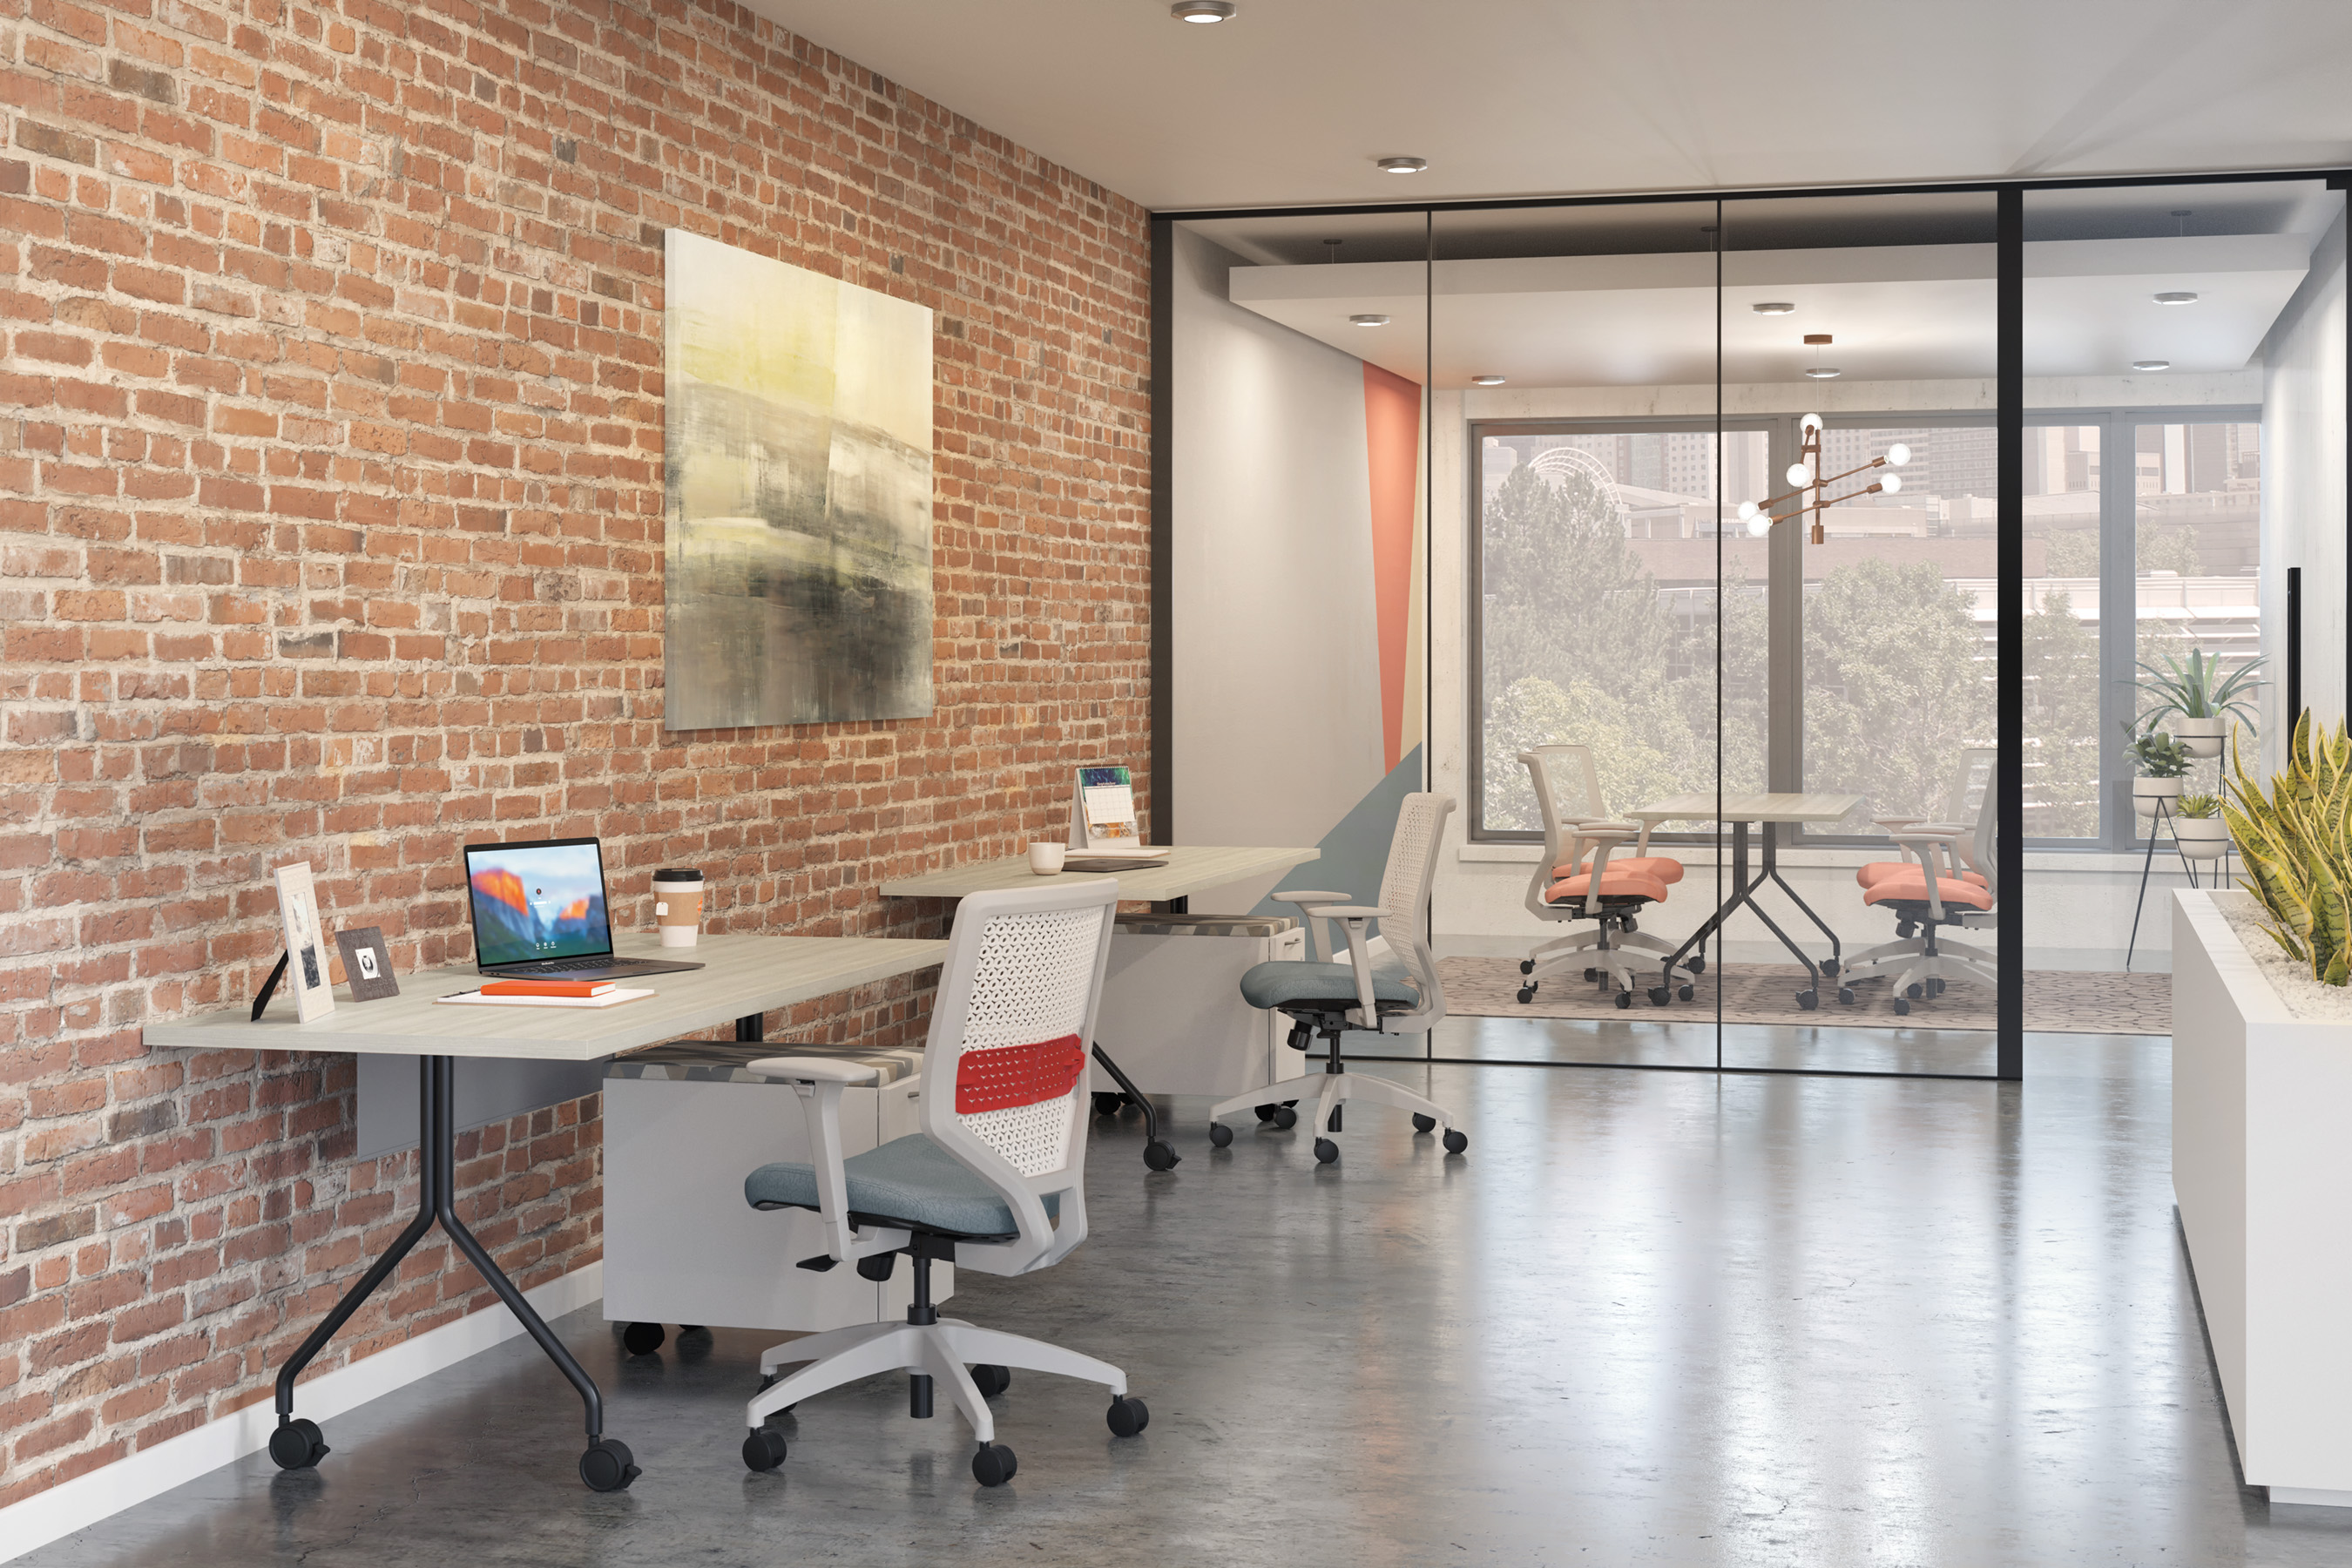 Traditional work stations are changing, now incorporating distanced desk and privacy screens with cleanable fabrics, allowing your users to feel safe and comfortable within their workspace.